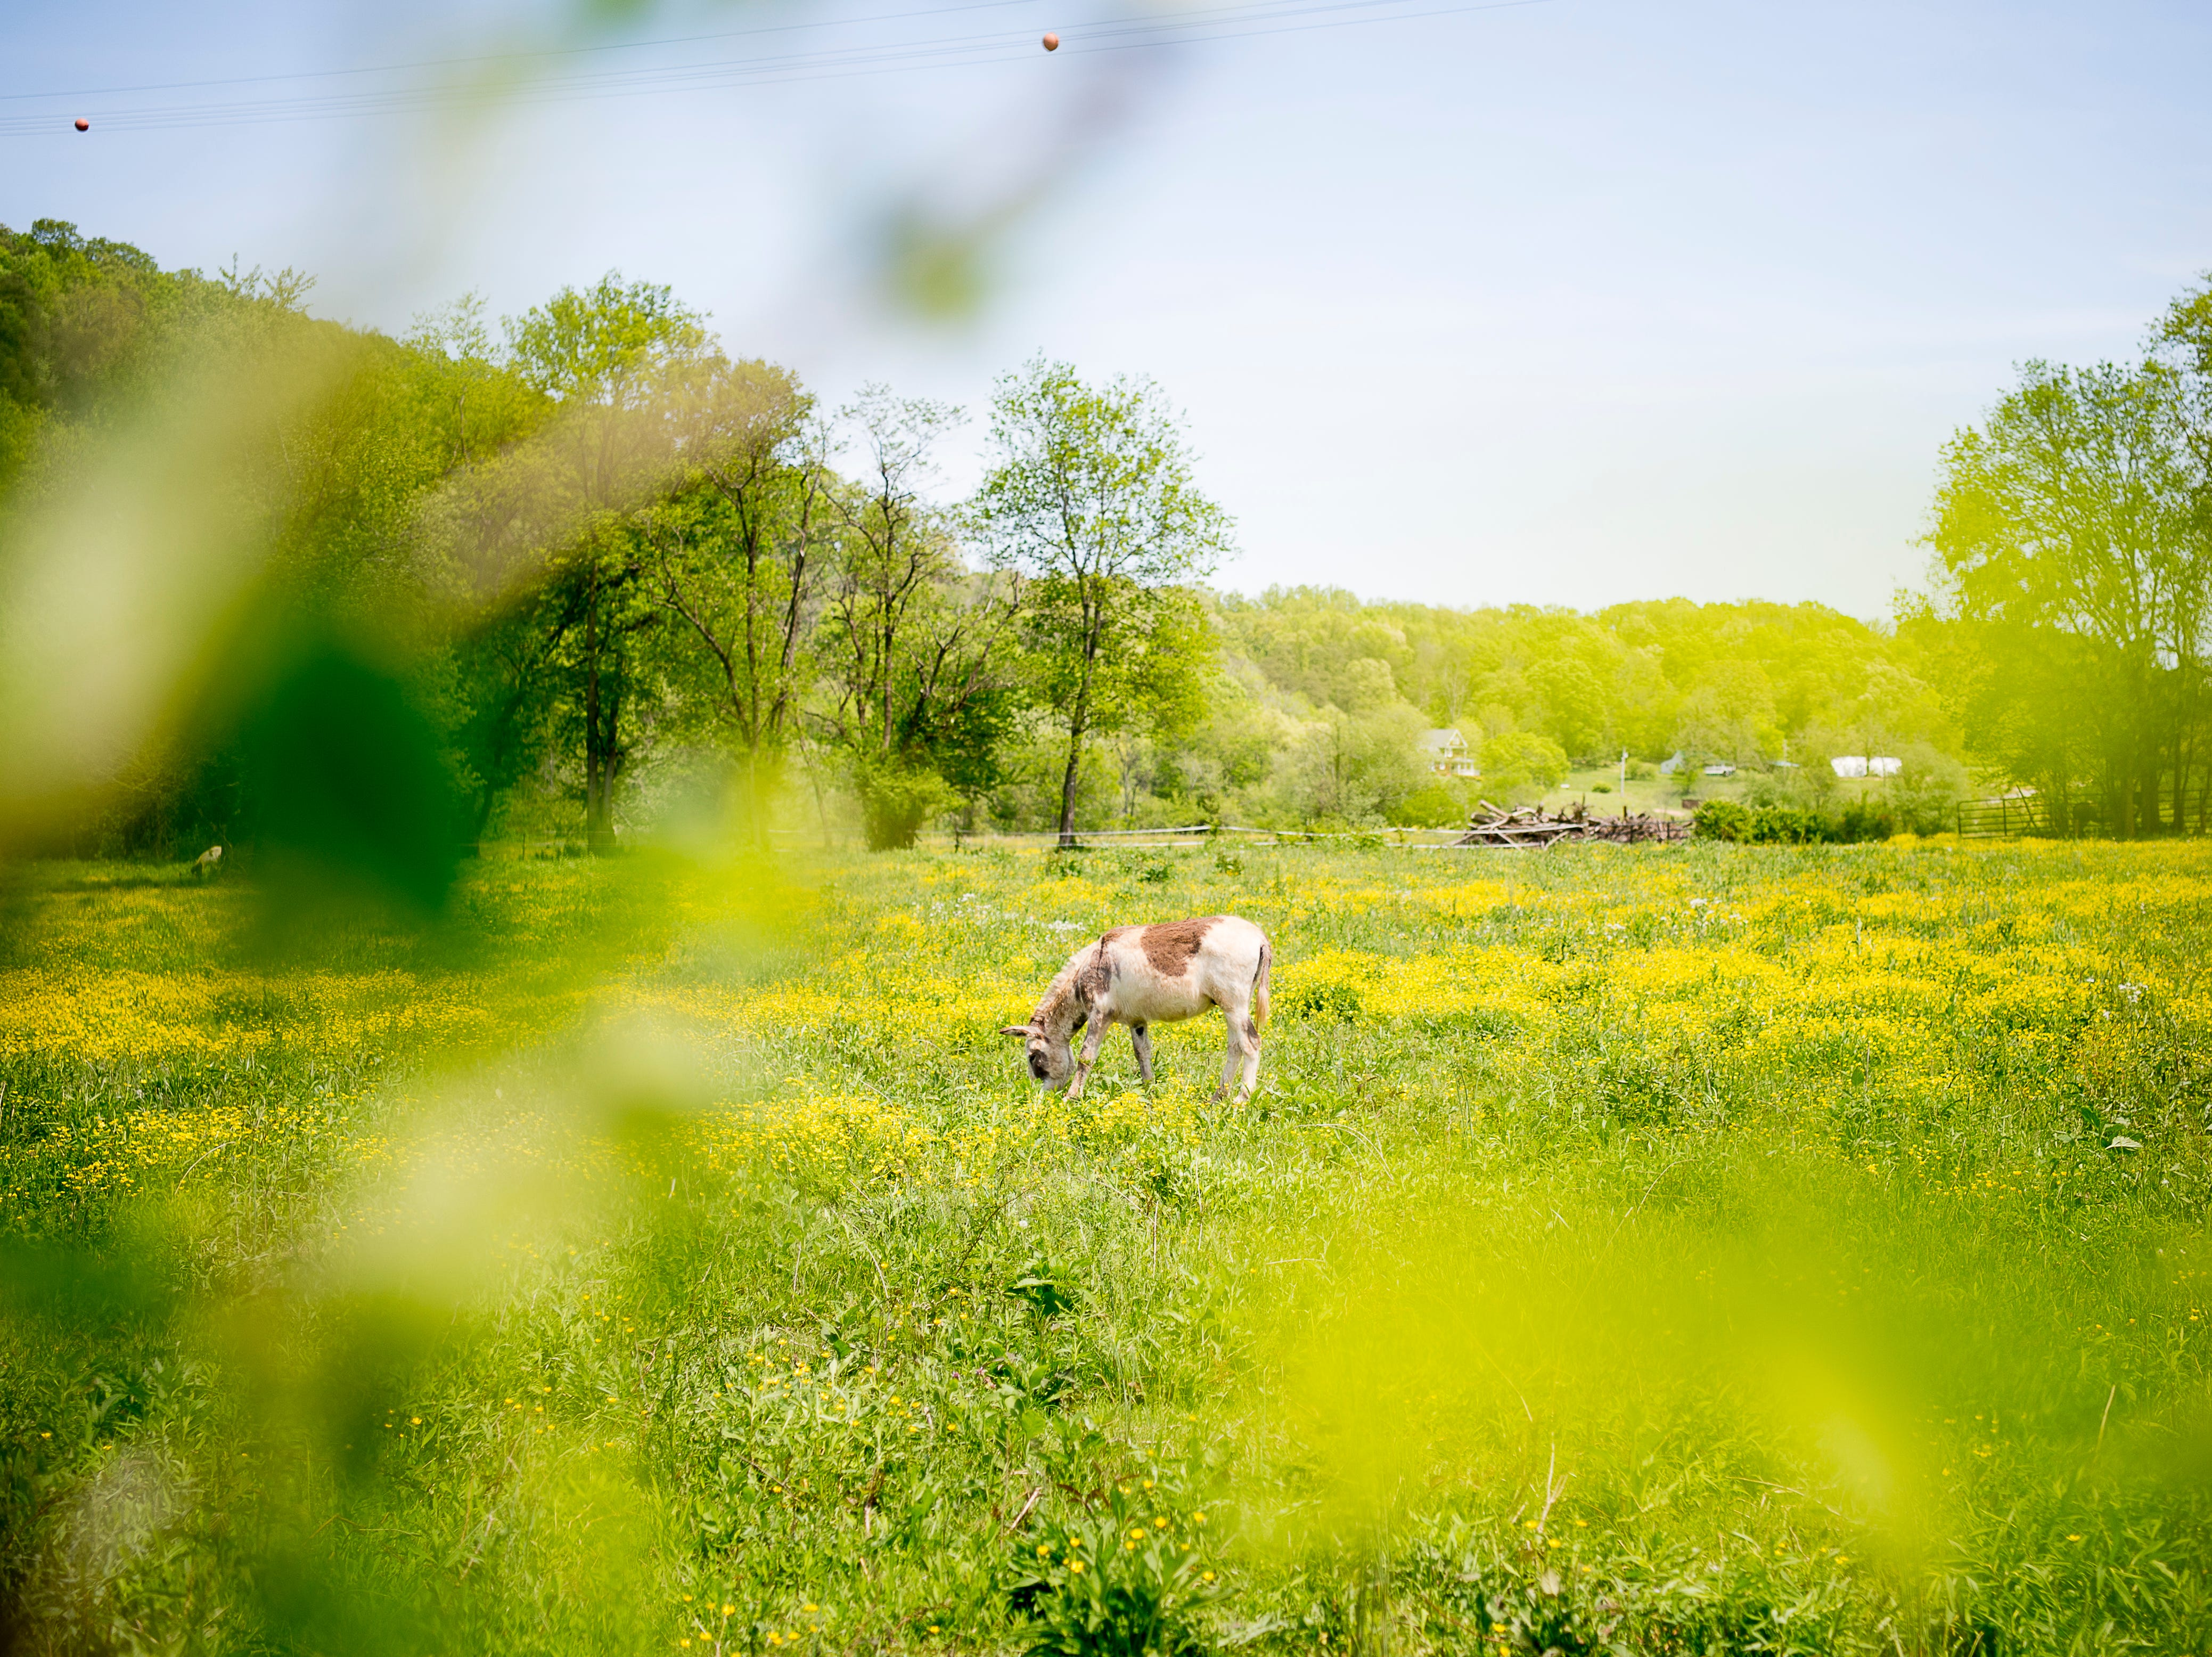 A horse grazes in a flowering field near River Plantation Farms in Sevierville, Tennessee on Wednesday, April 24, 2019.